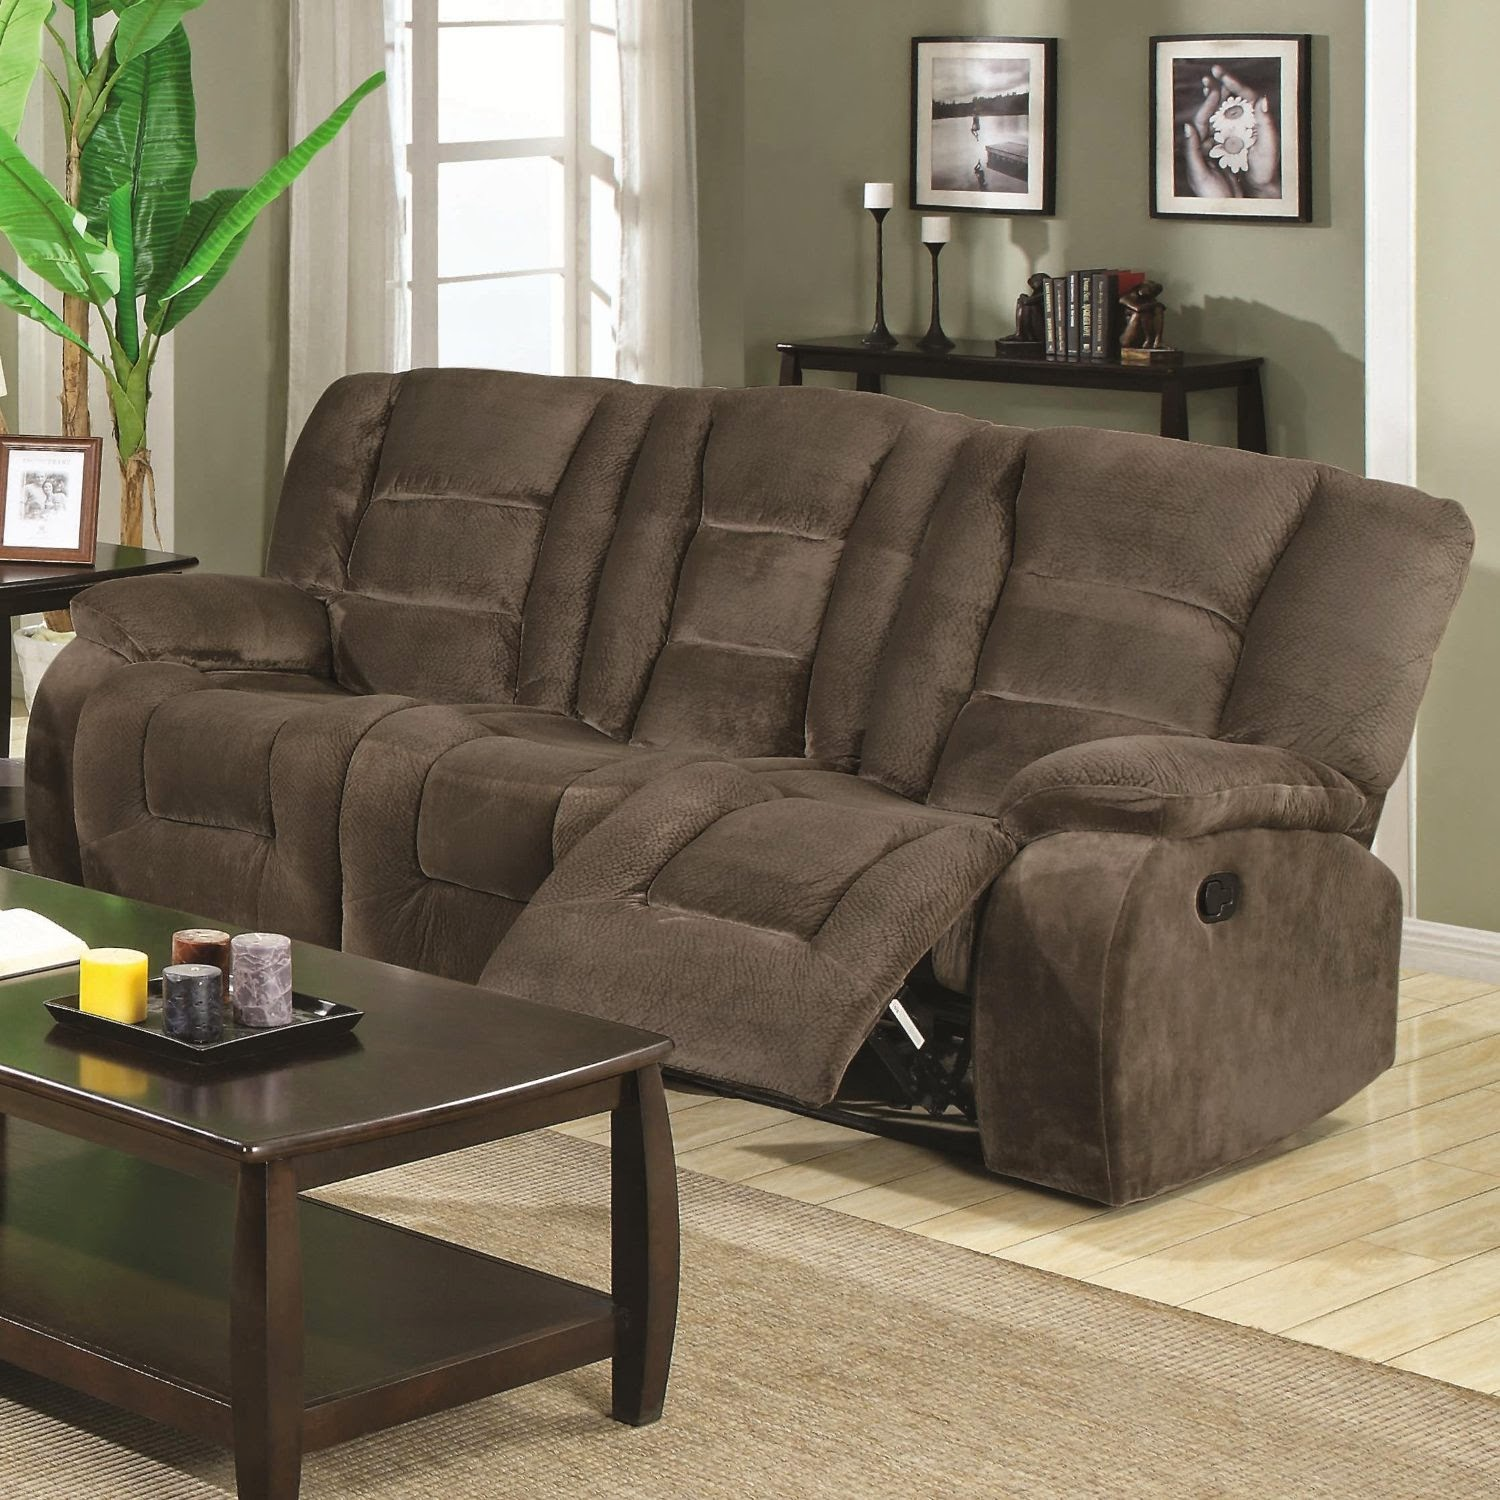 Cheap Reclining Sofas Sale: Fabric Recliner Sofas Sale